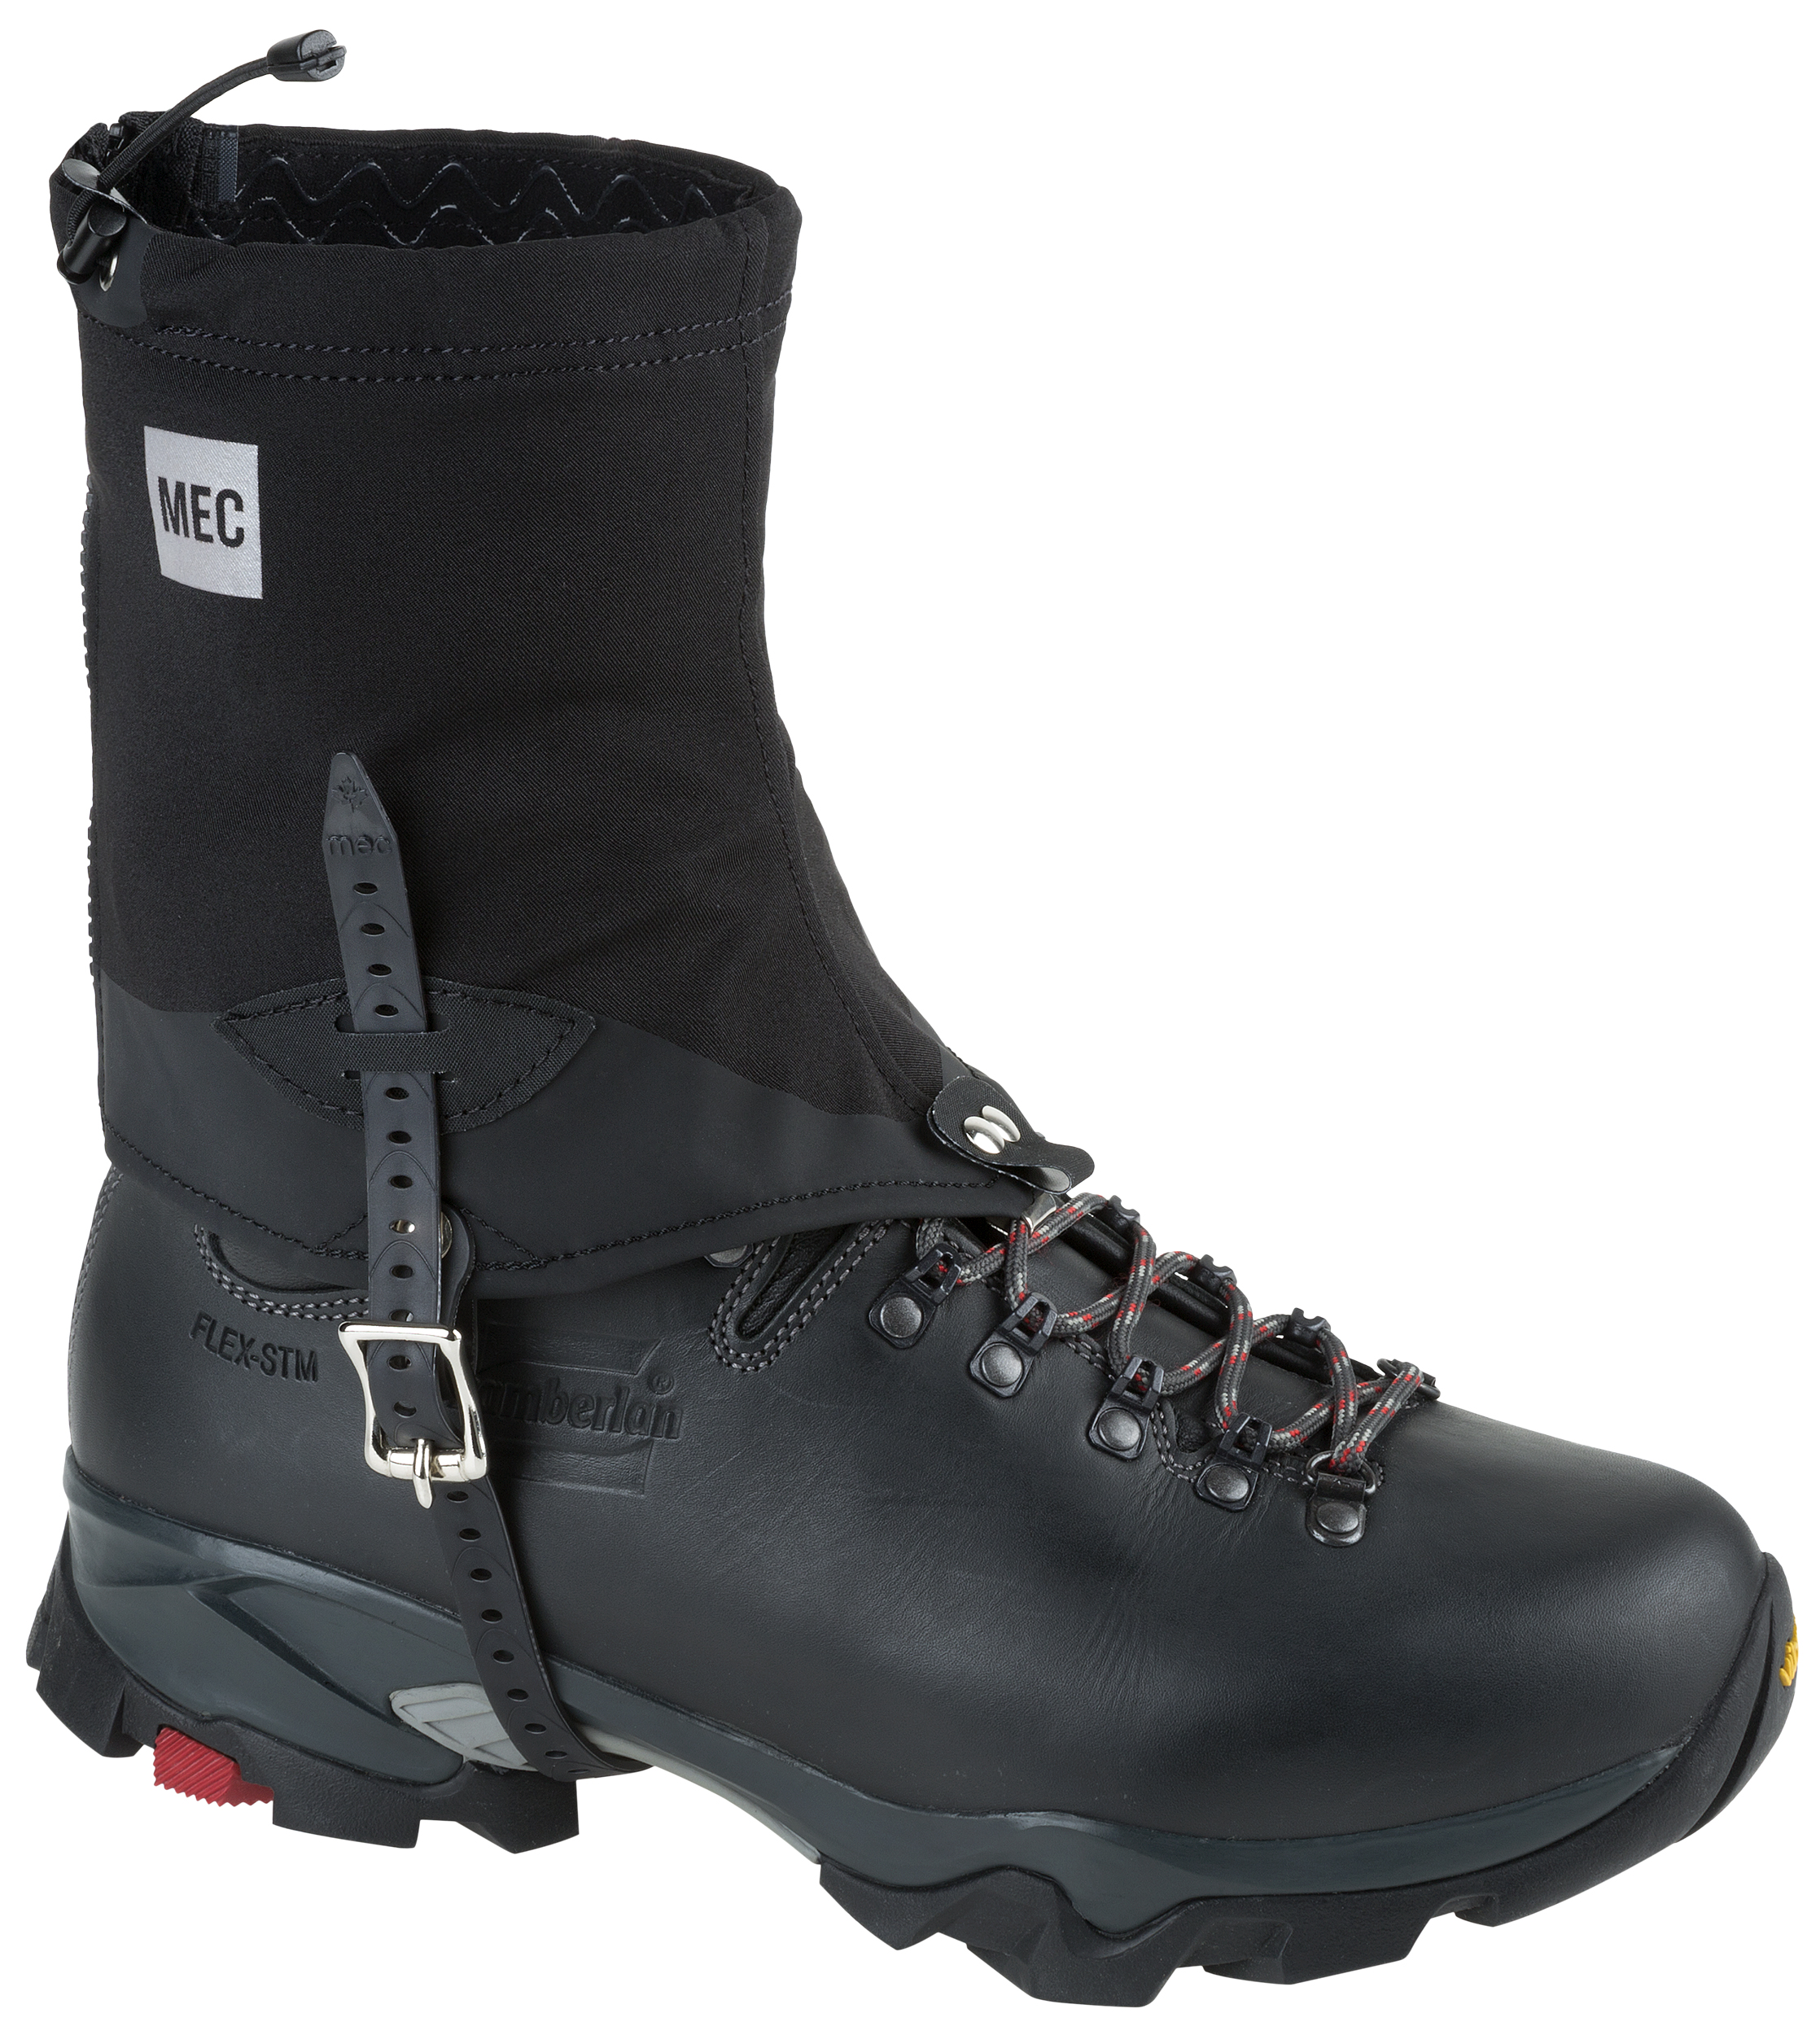 sale under $60 visit cheap online MEC Short Gaiters - Unisex pay with visa sale online free shipping 2015 new P16pfZiwP6